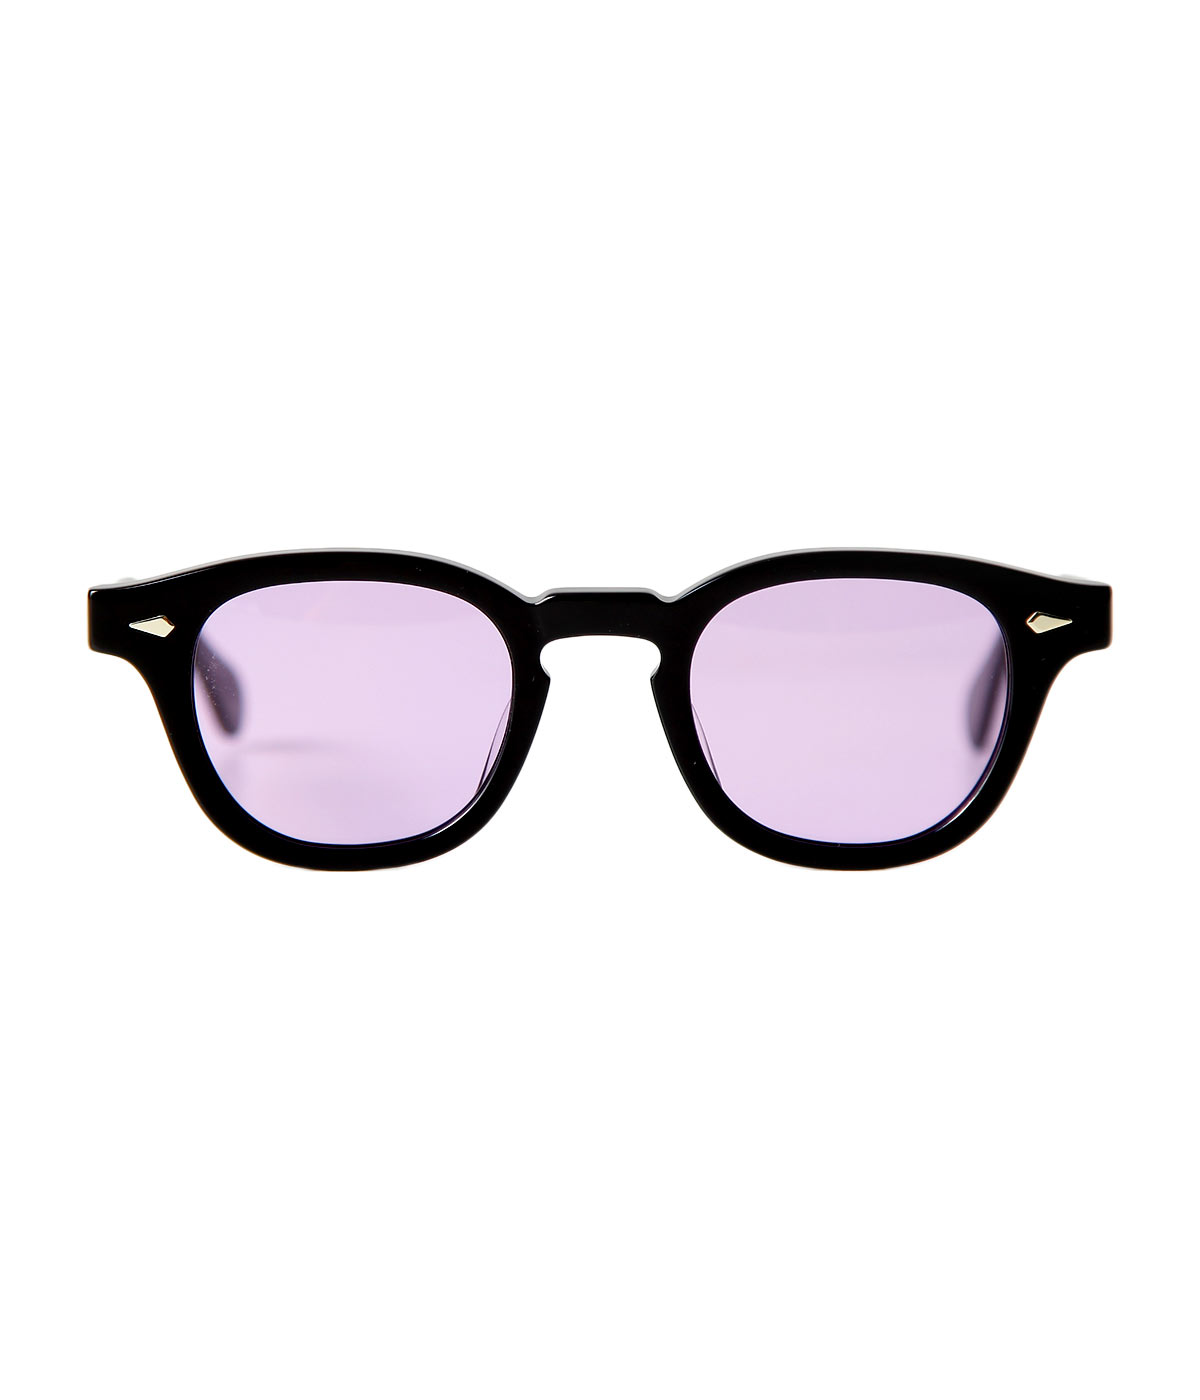 AR 44-24 -BLACK / PURPLE -